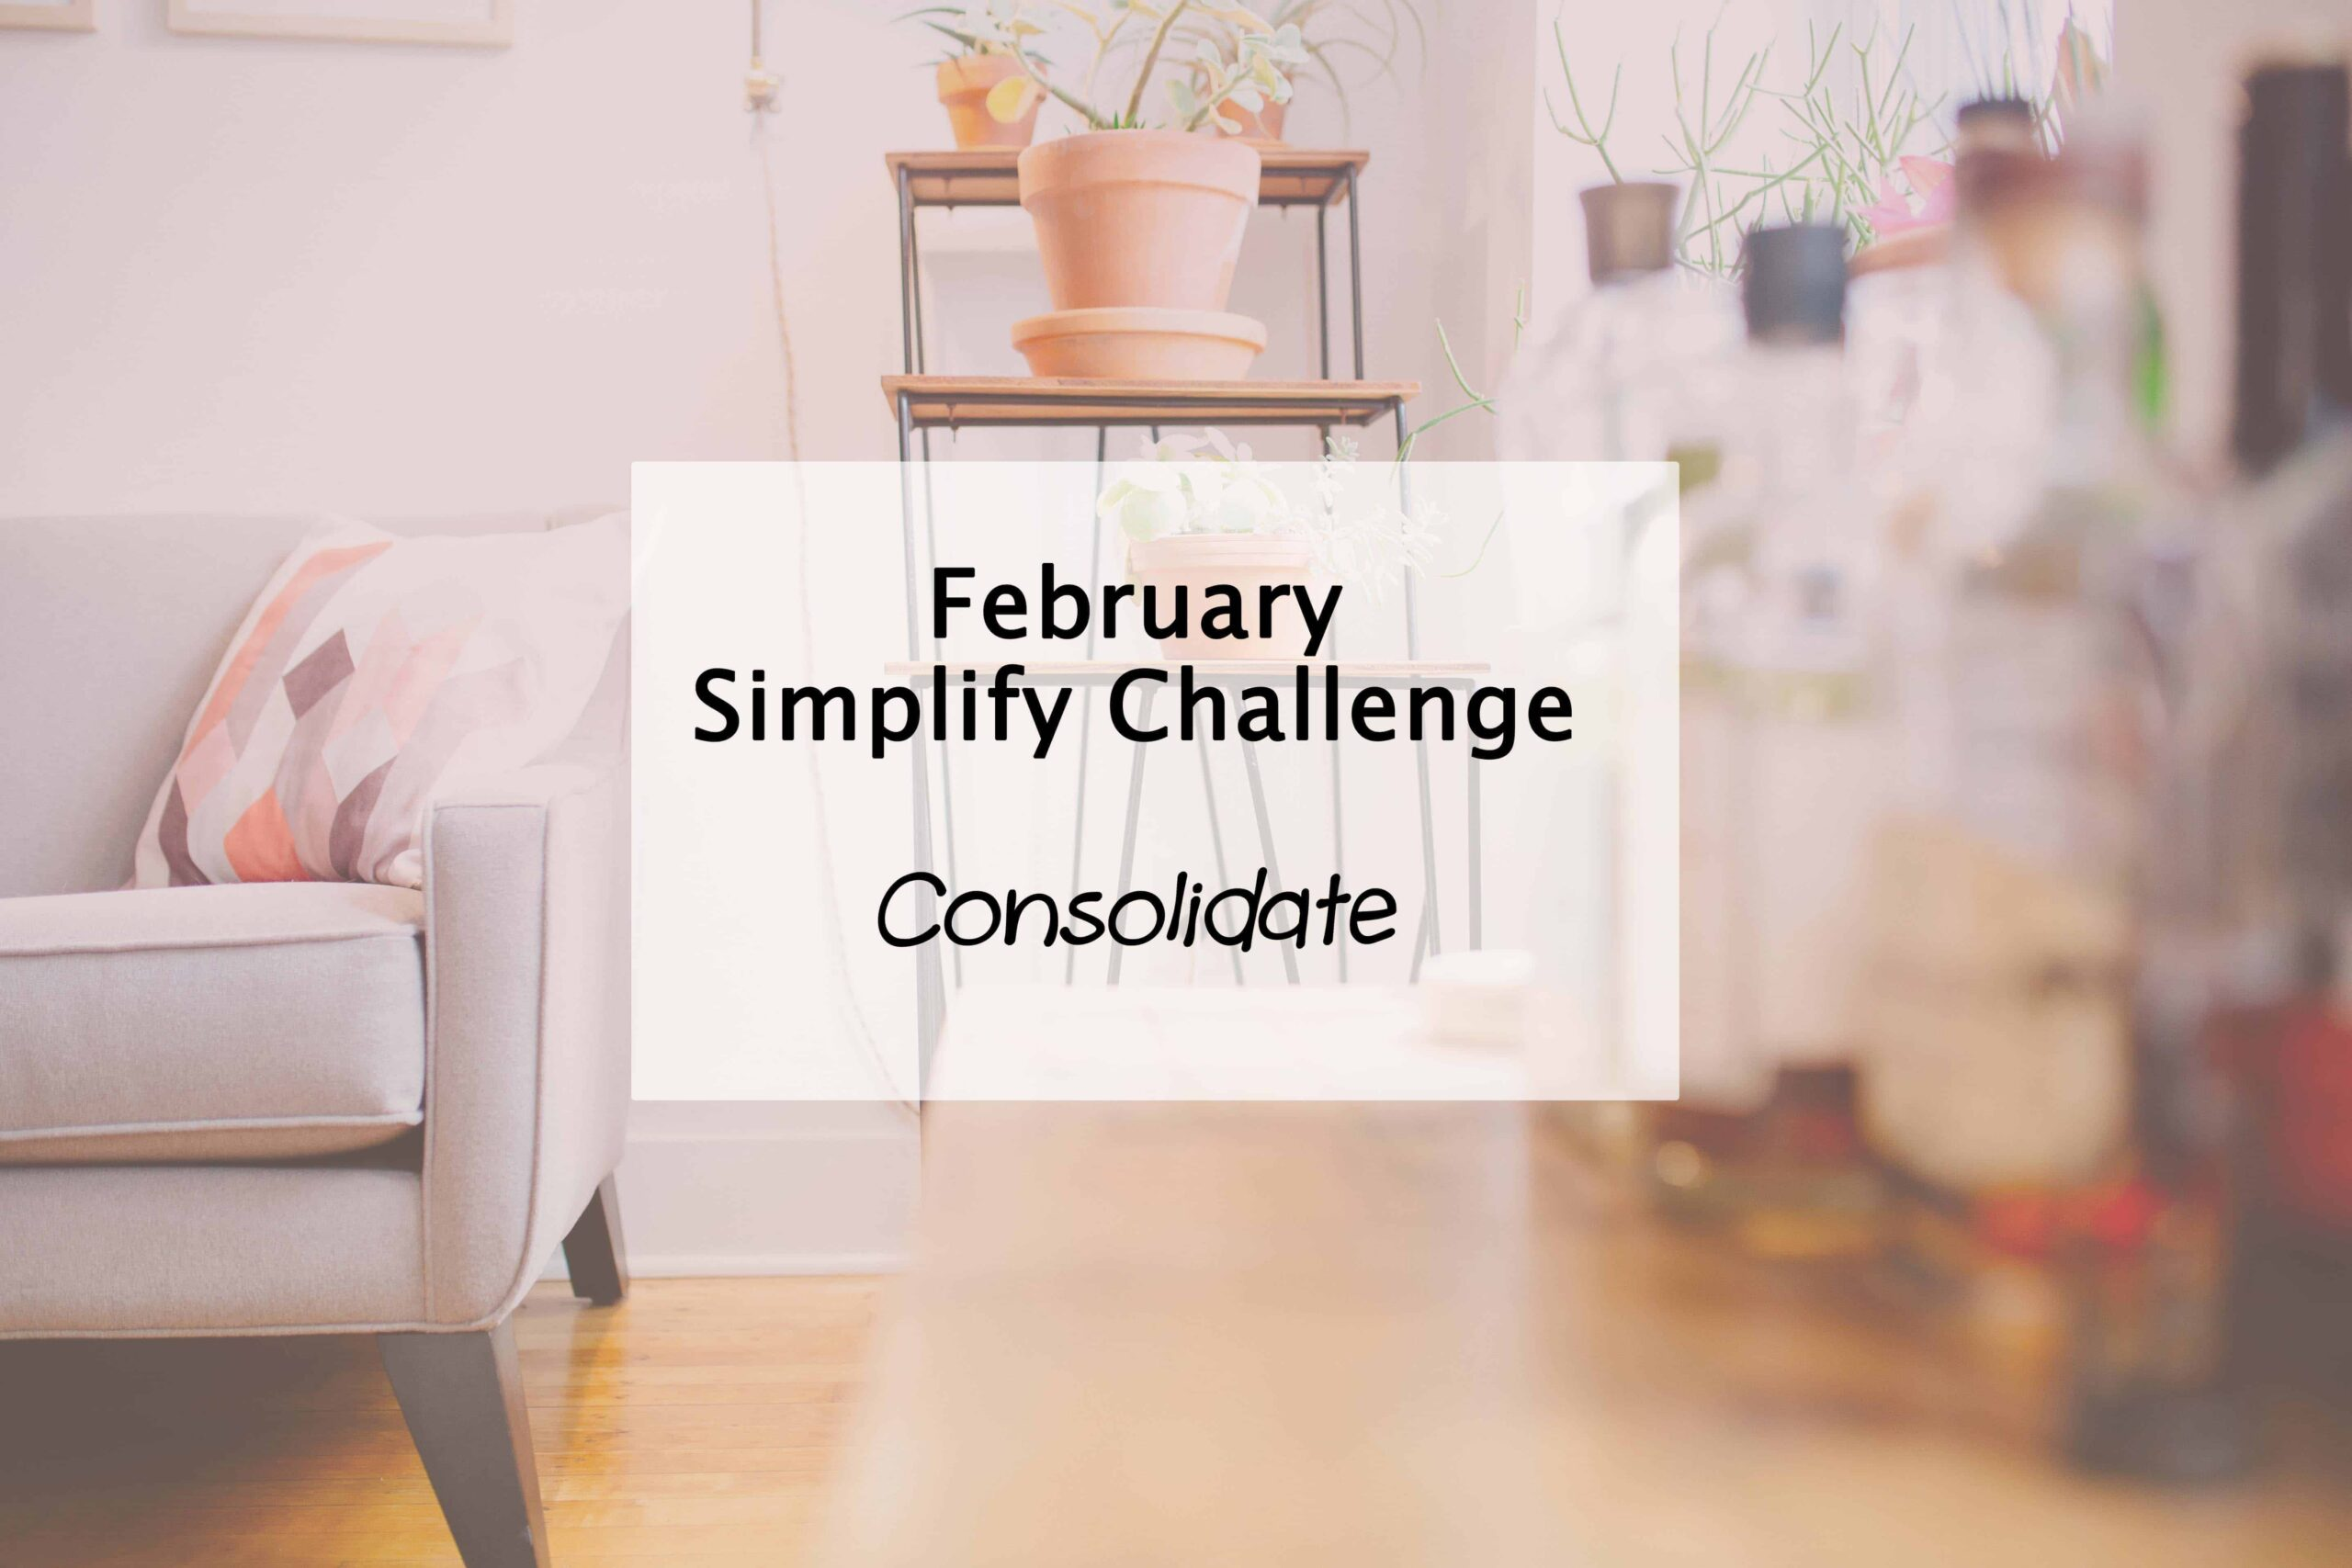 Simplify challenge